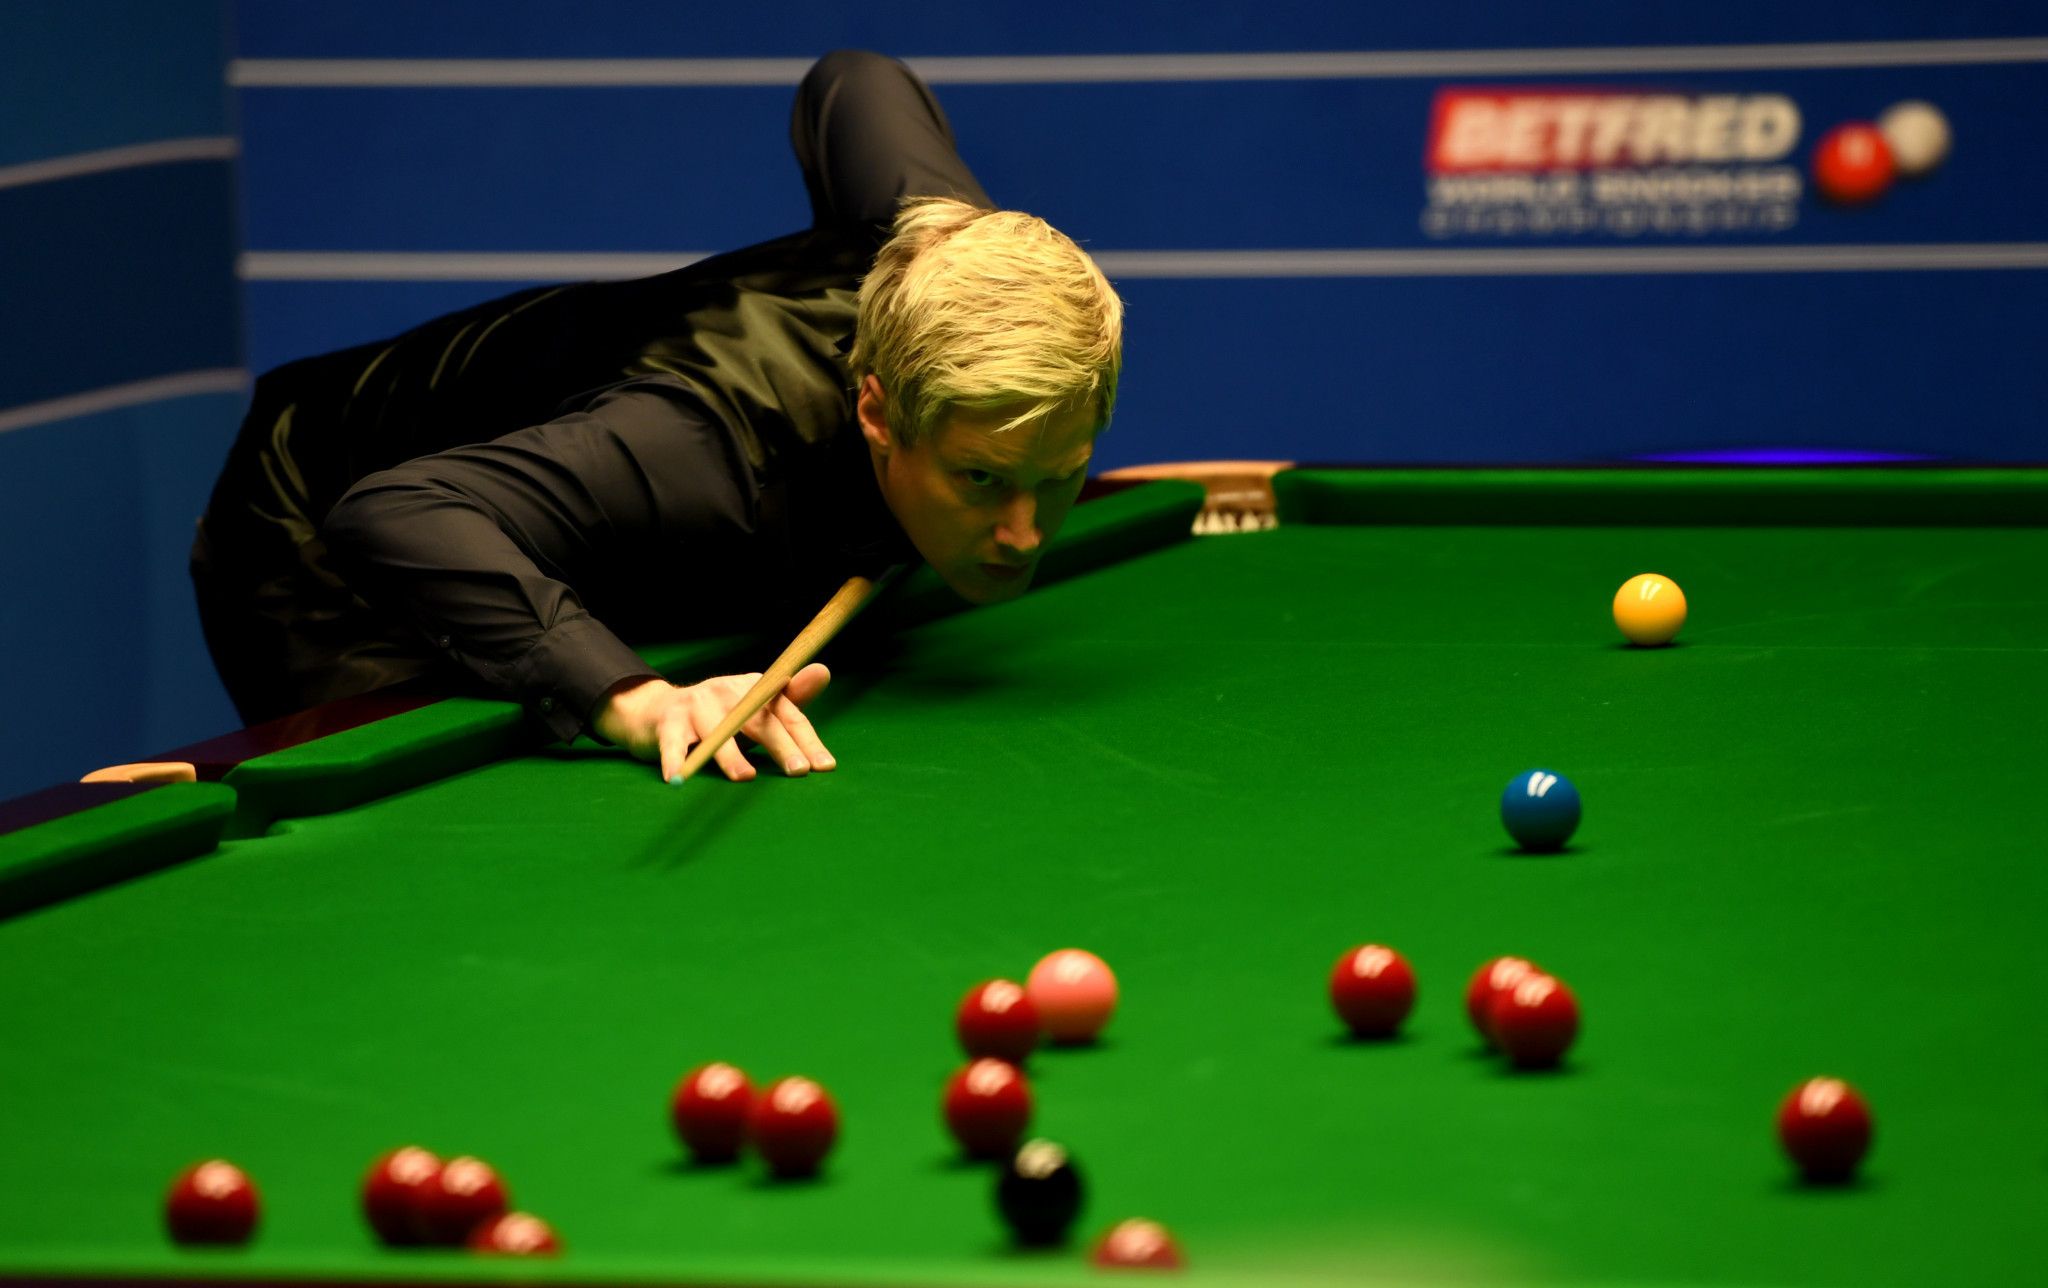 Former champions Robertson and Higgins among winners on day three of World Snooker Championship